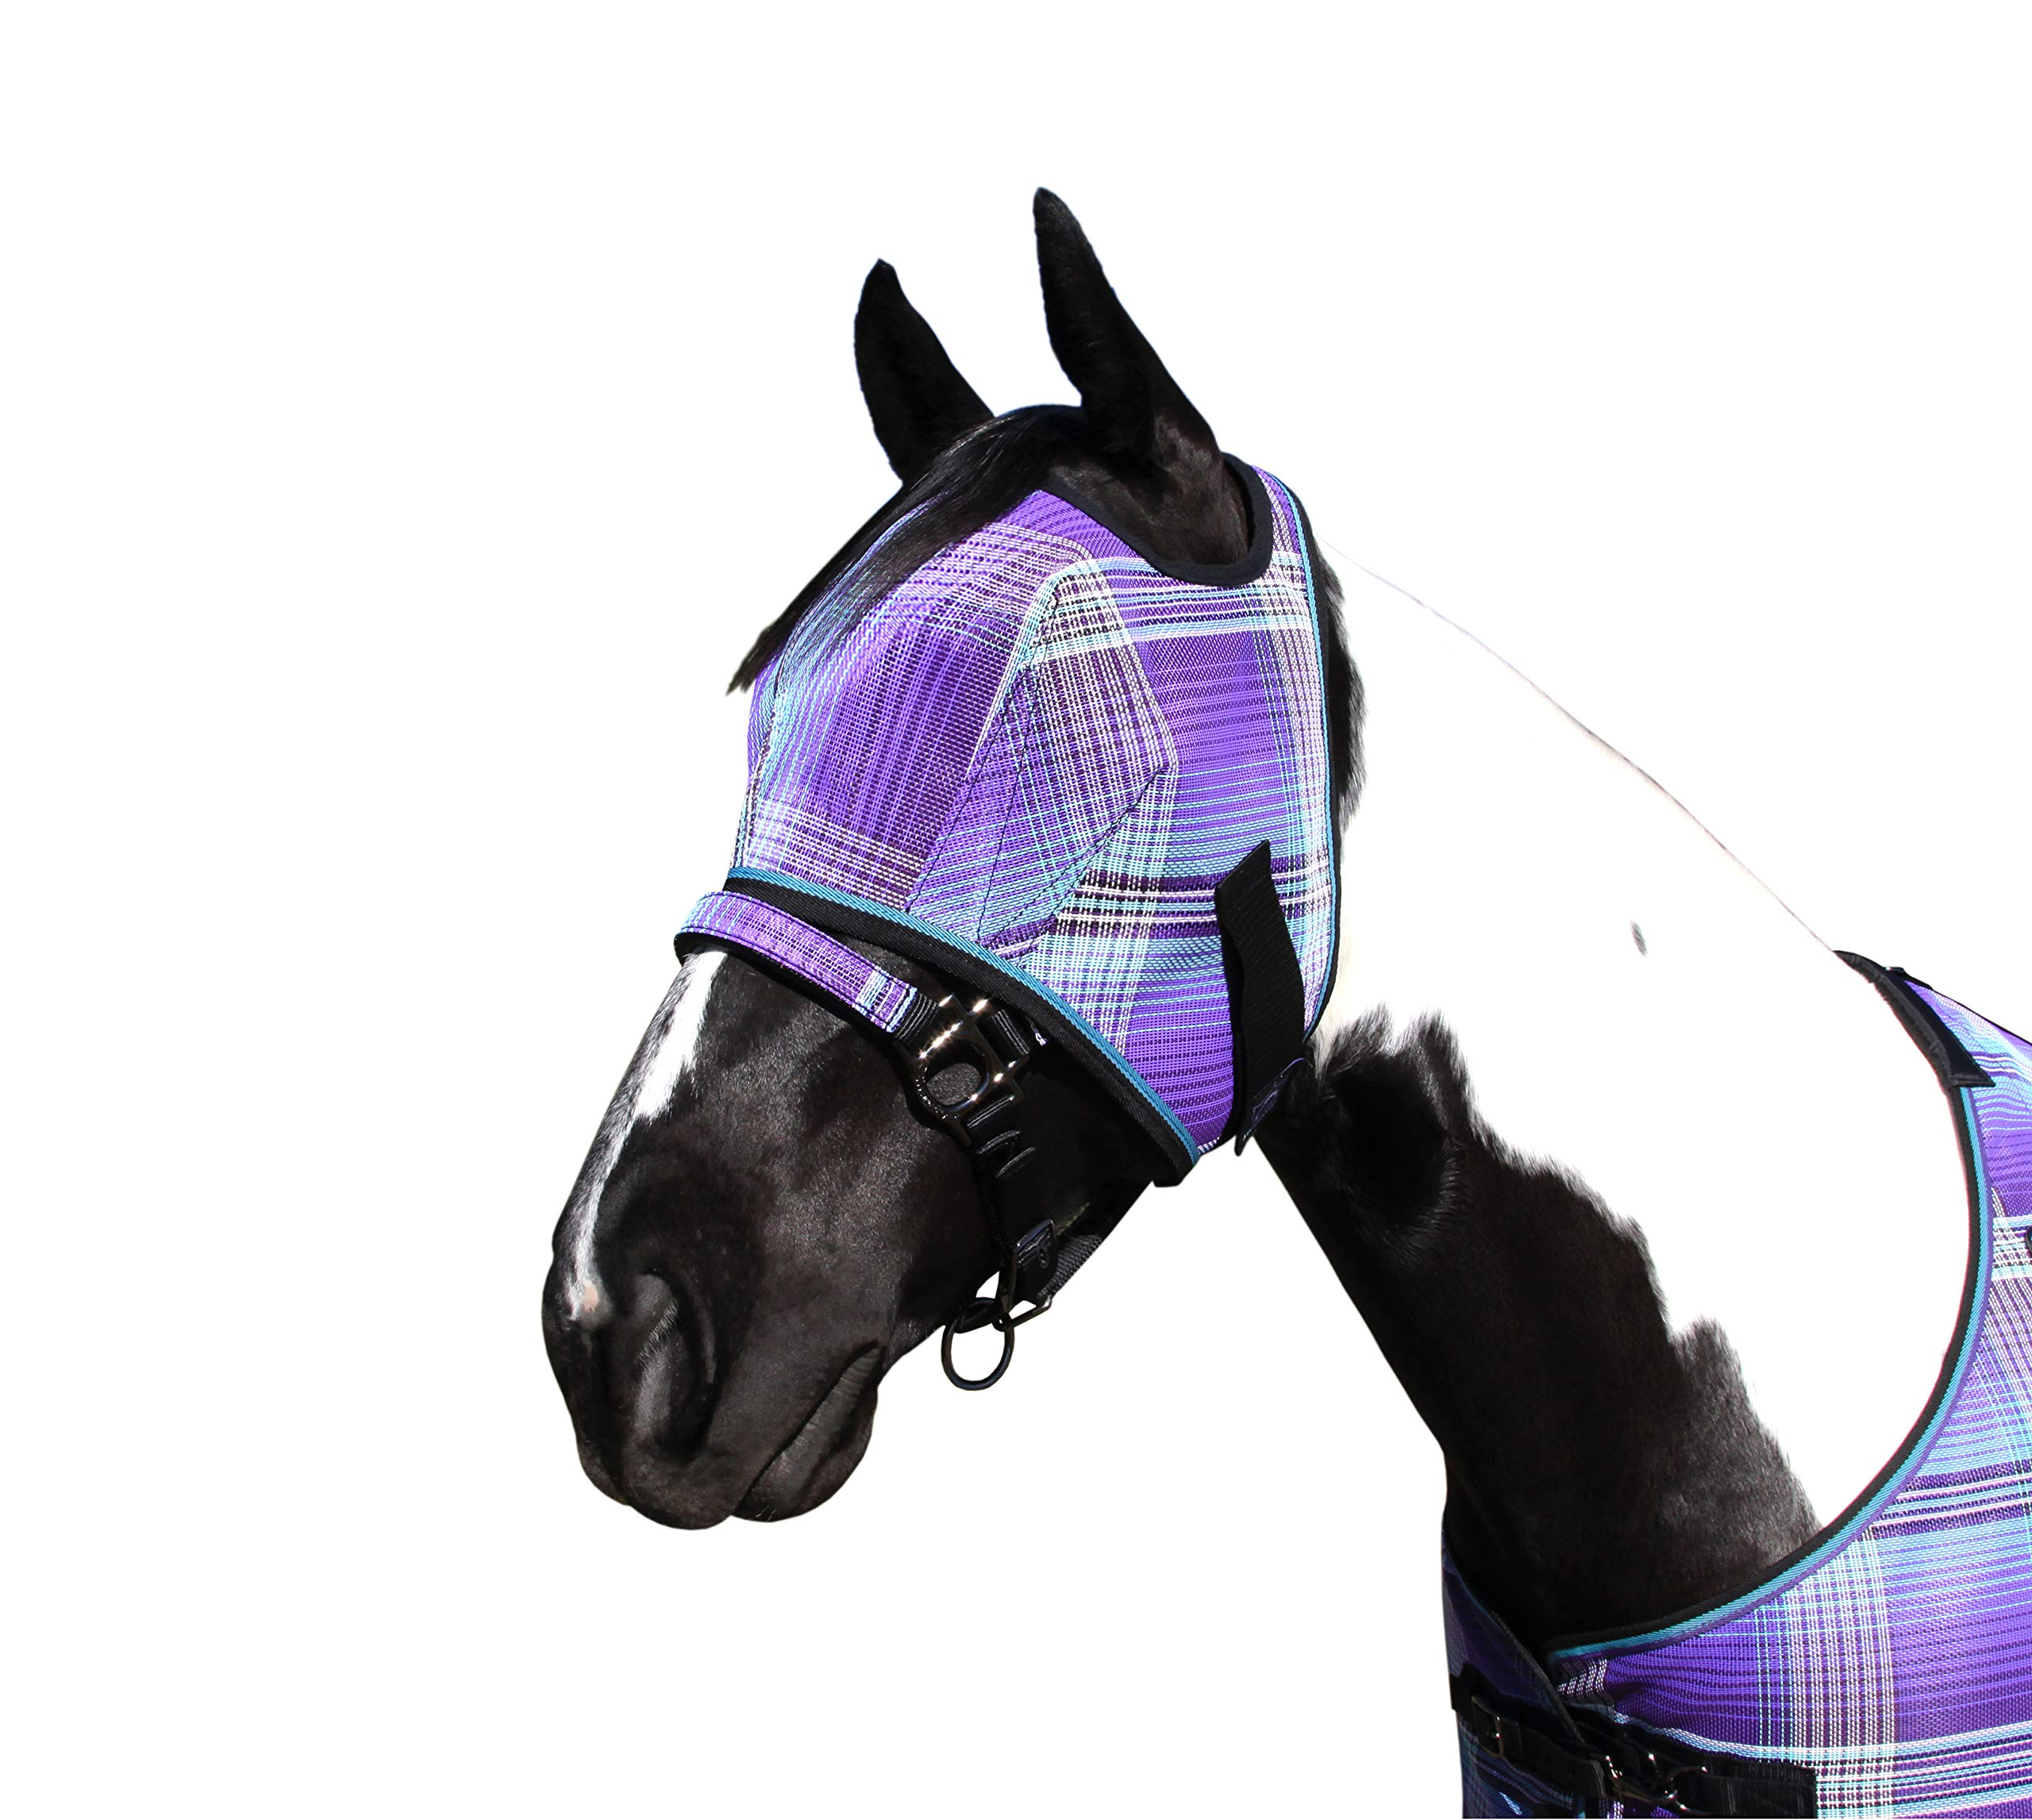 Kensington Fly Mask Web Trim - Protects Horses Face and Eyes from Biting Insects and UV Rays While Allowing Full Visibility - Ears and Forelock Able to Come Through The Mask (Medium, Lavender Mint)